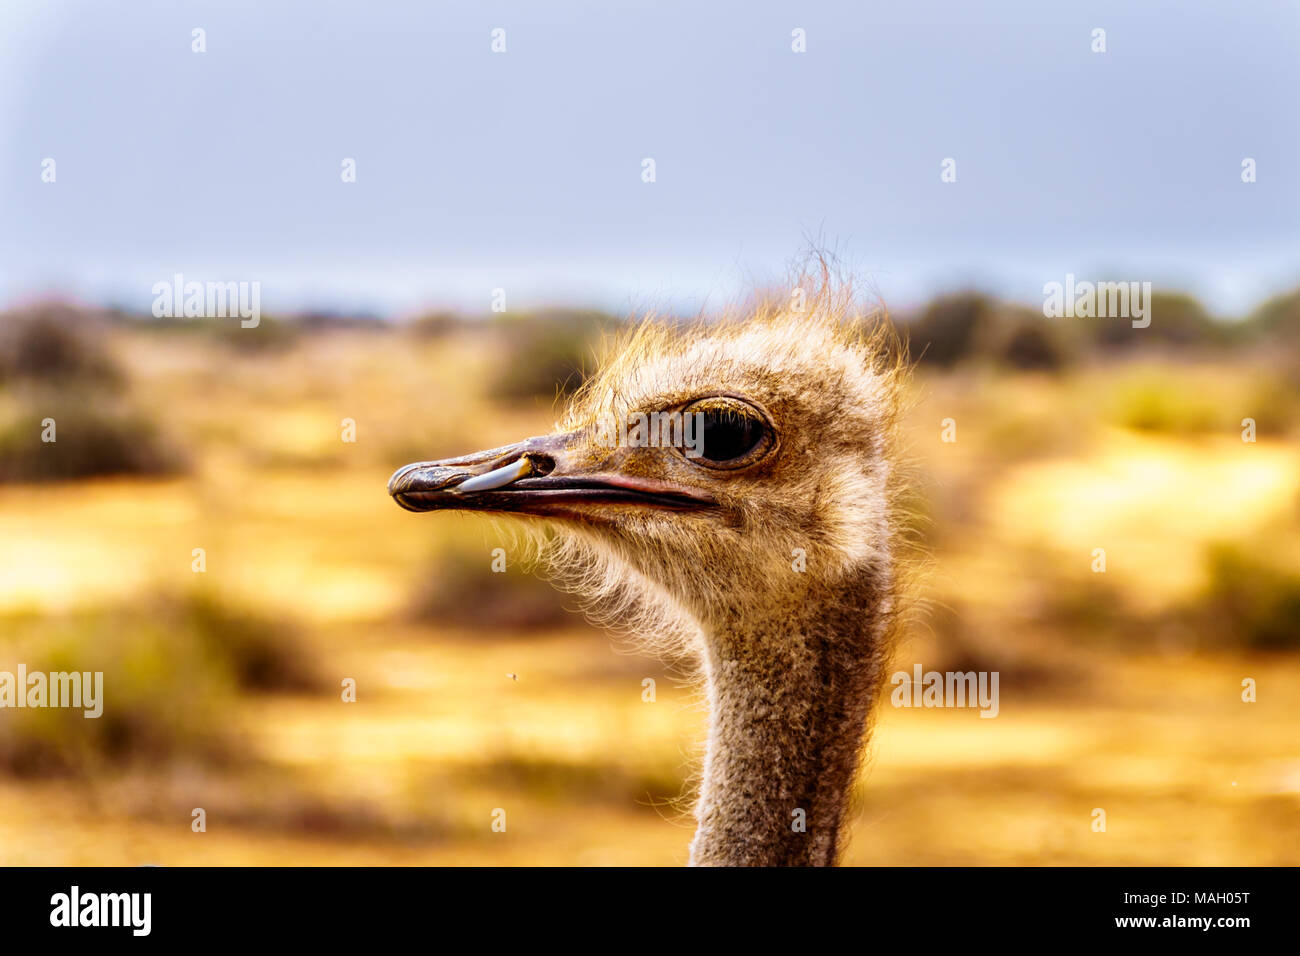 Close up of an Ostrich Head at an Ostrich Farm in Oudtshoorn in the semi desert Little Karoo Region Western Cape Province of South Africa - Stock Image